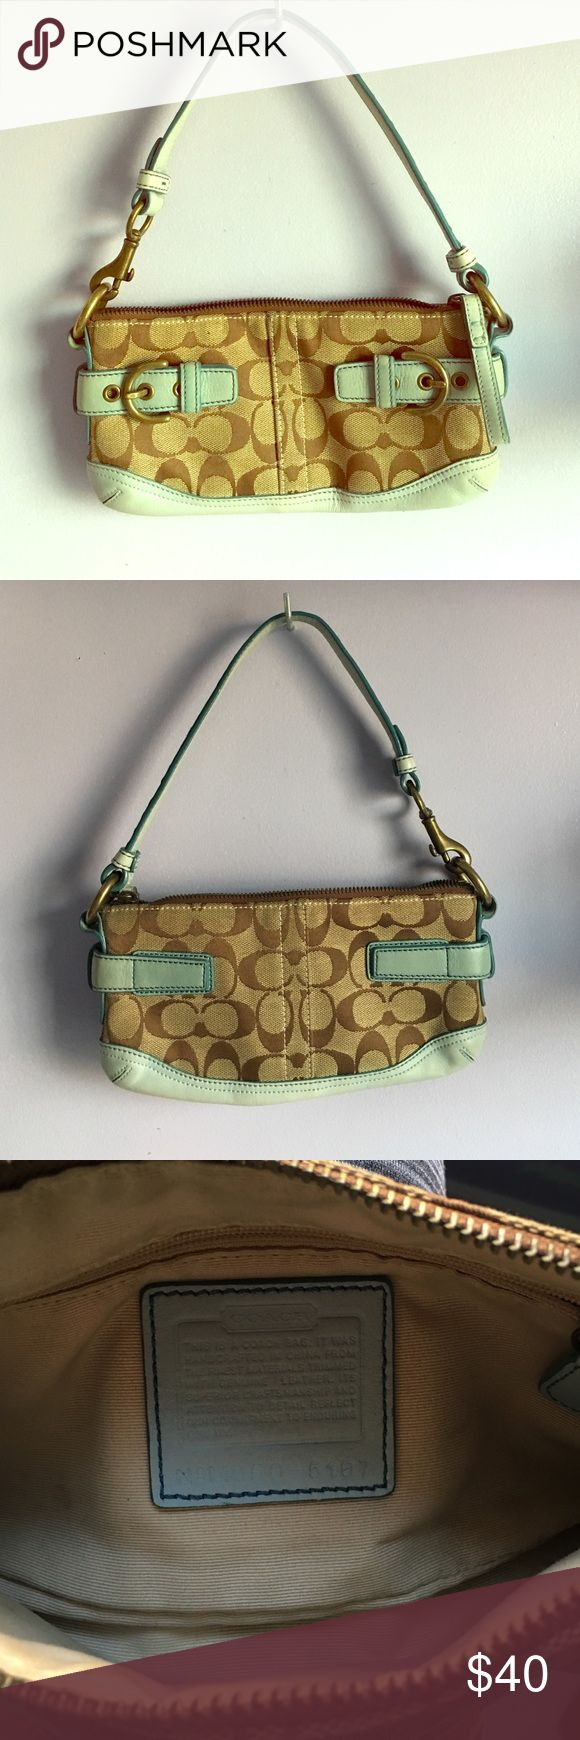 Coach Shoulder Bag Great condition! Coach Bags Shoulder Bags